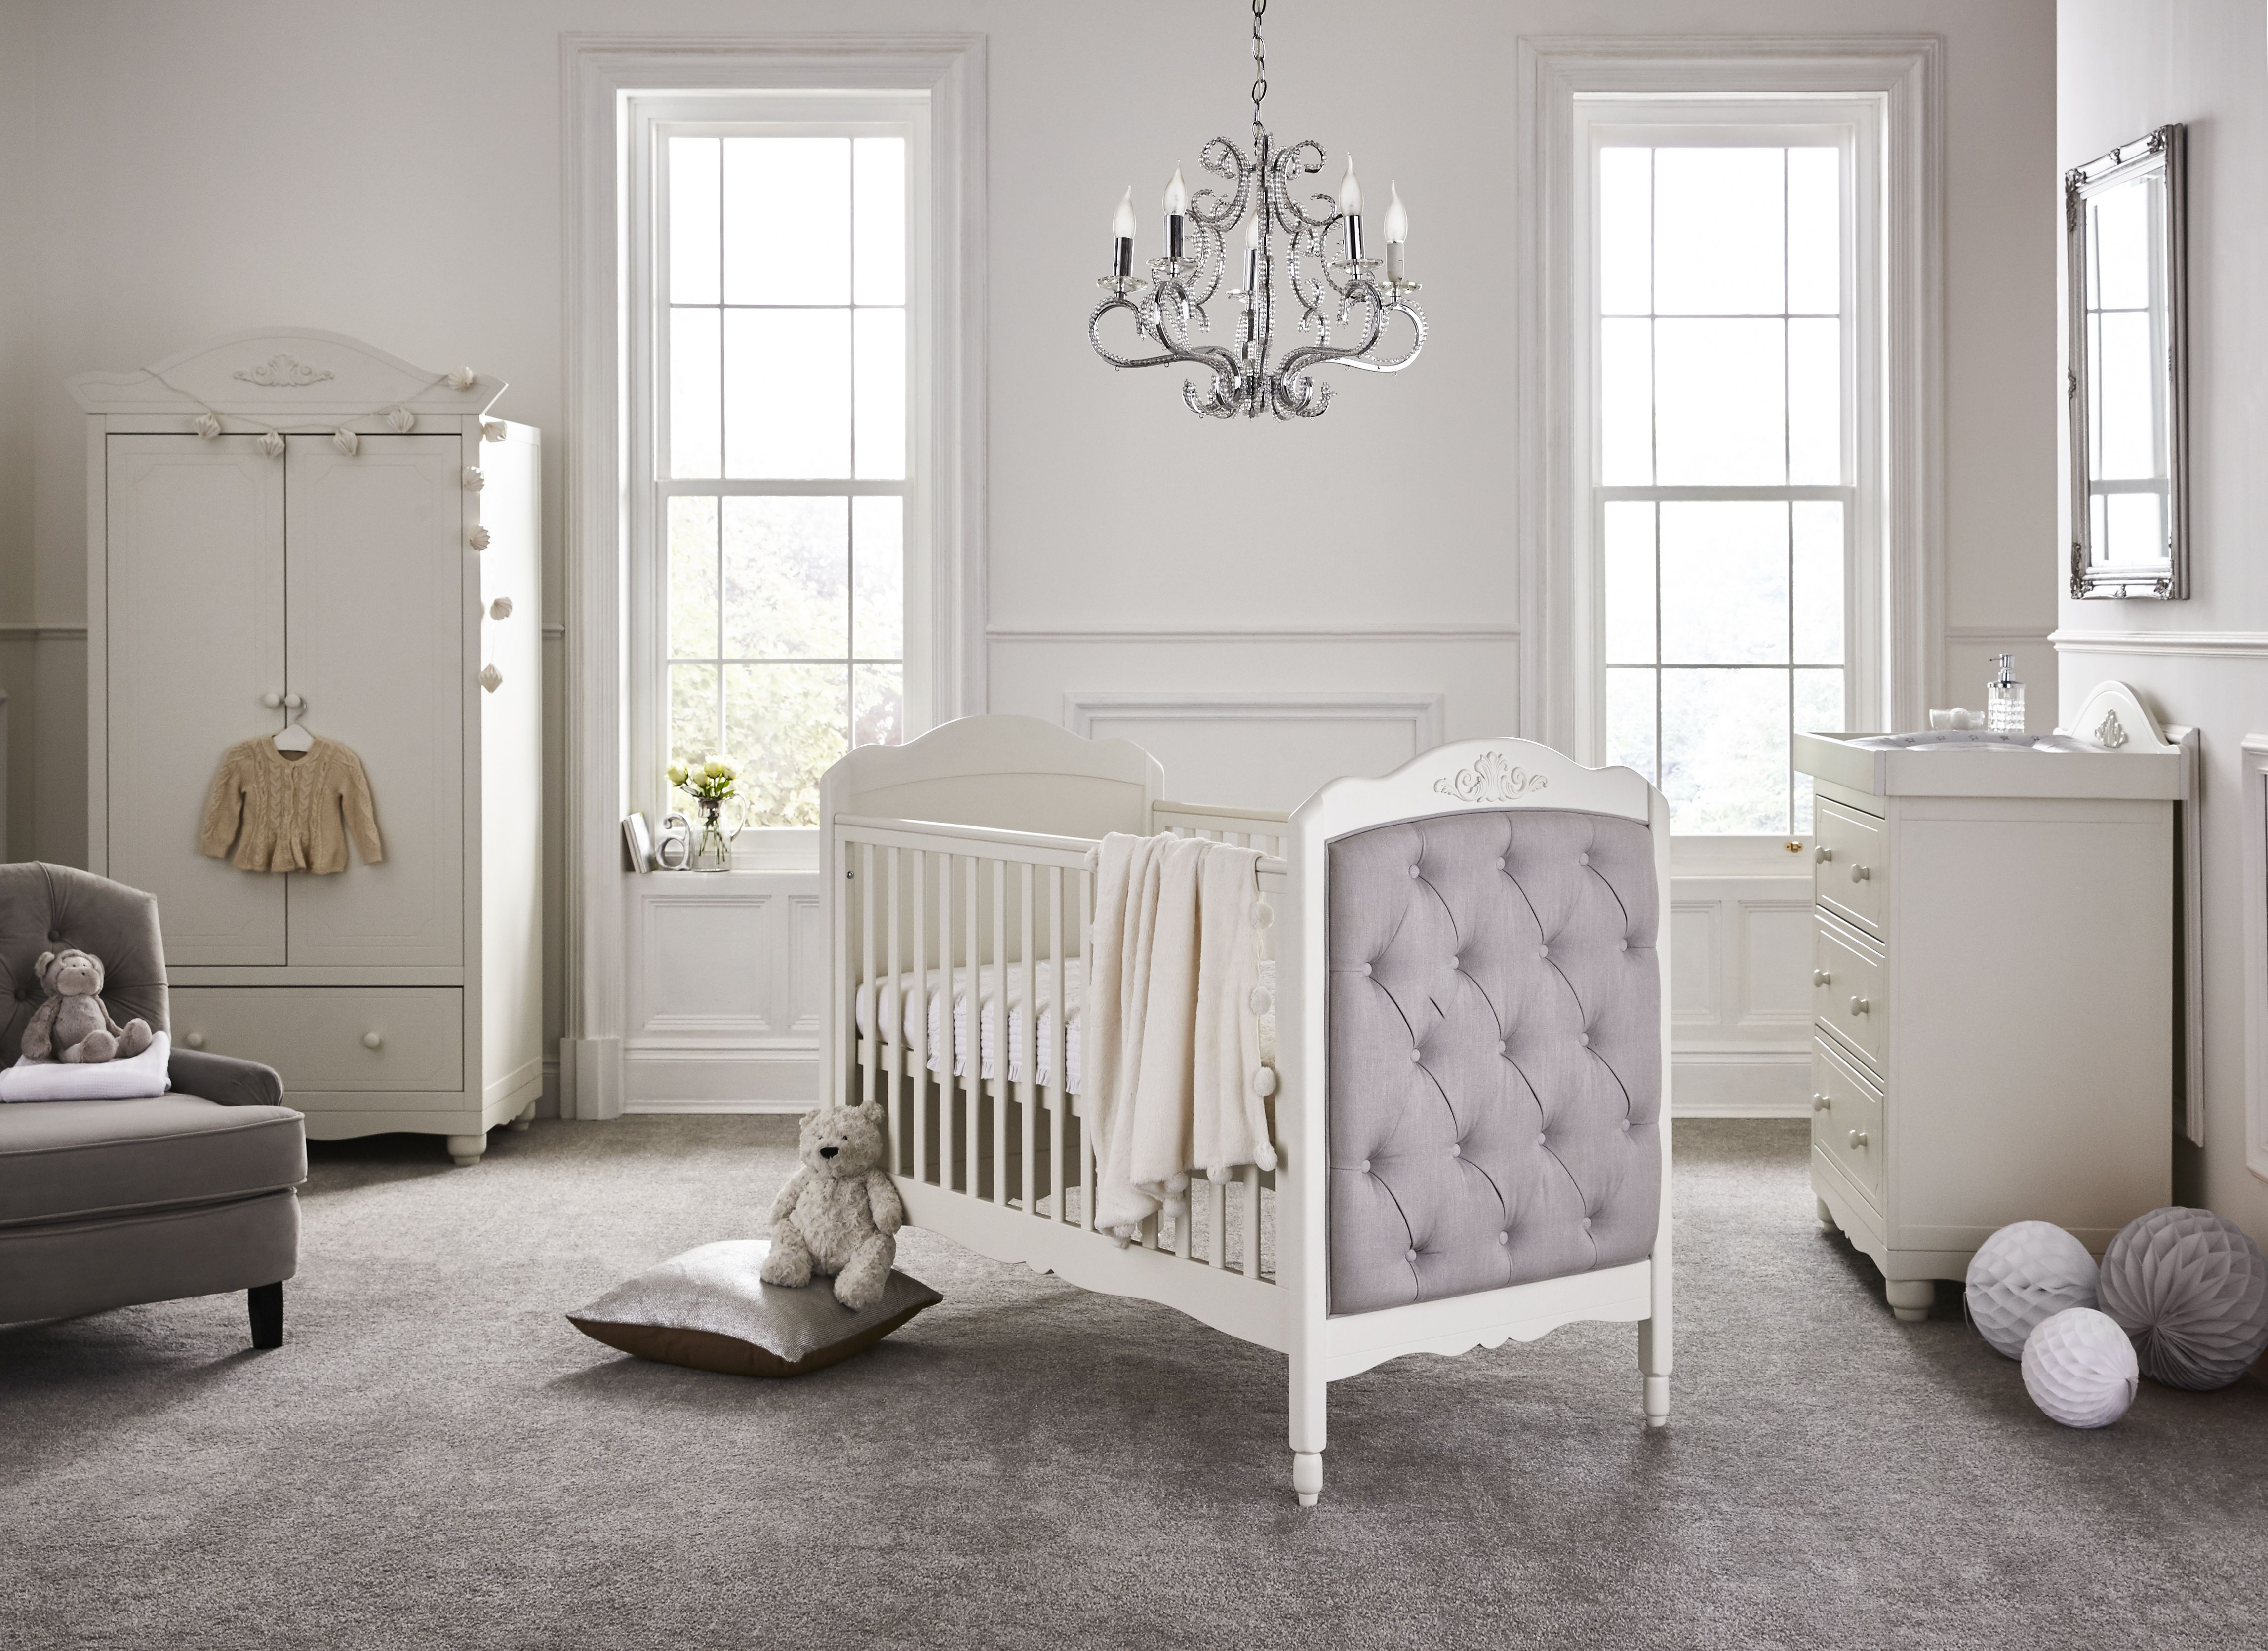 Meego Epernay Cot Bed with extra Junior bed padded End